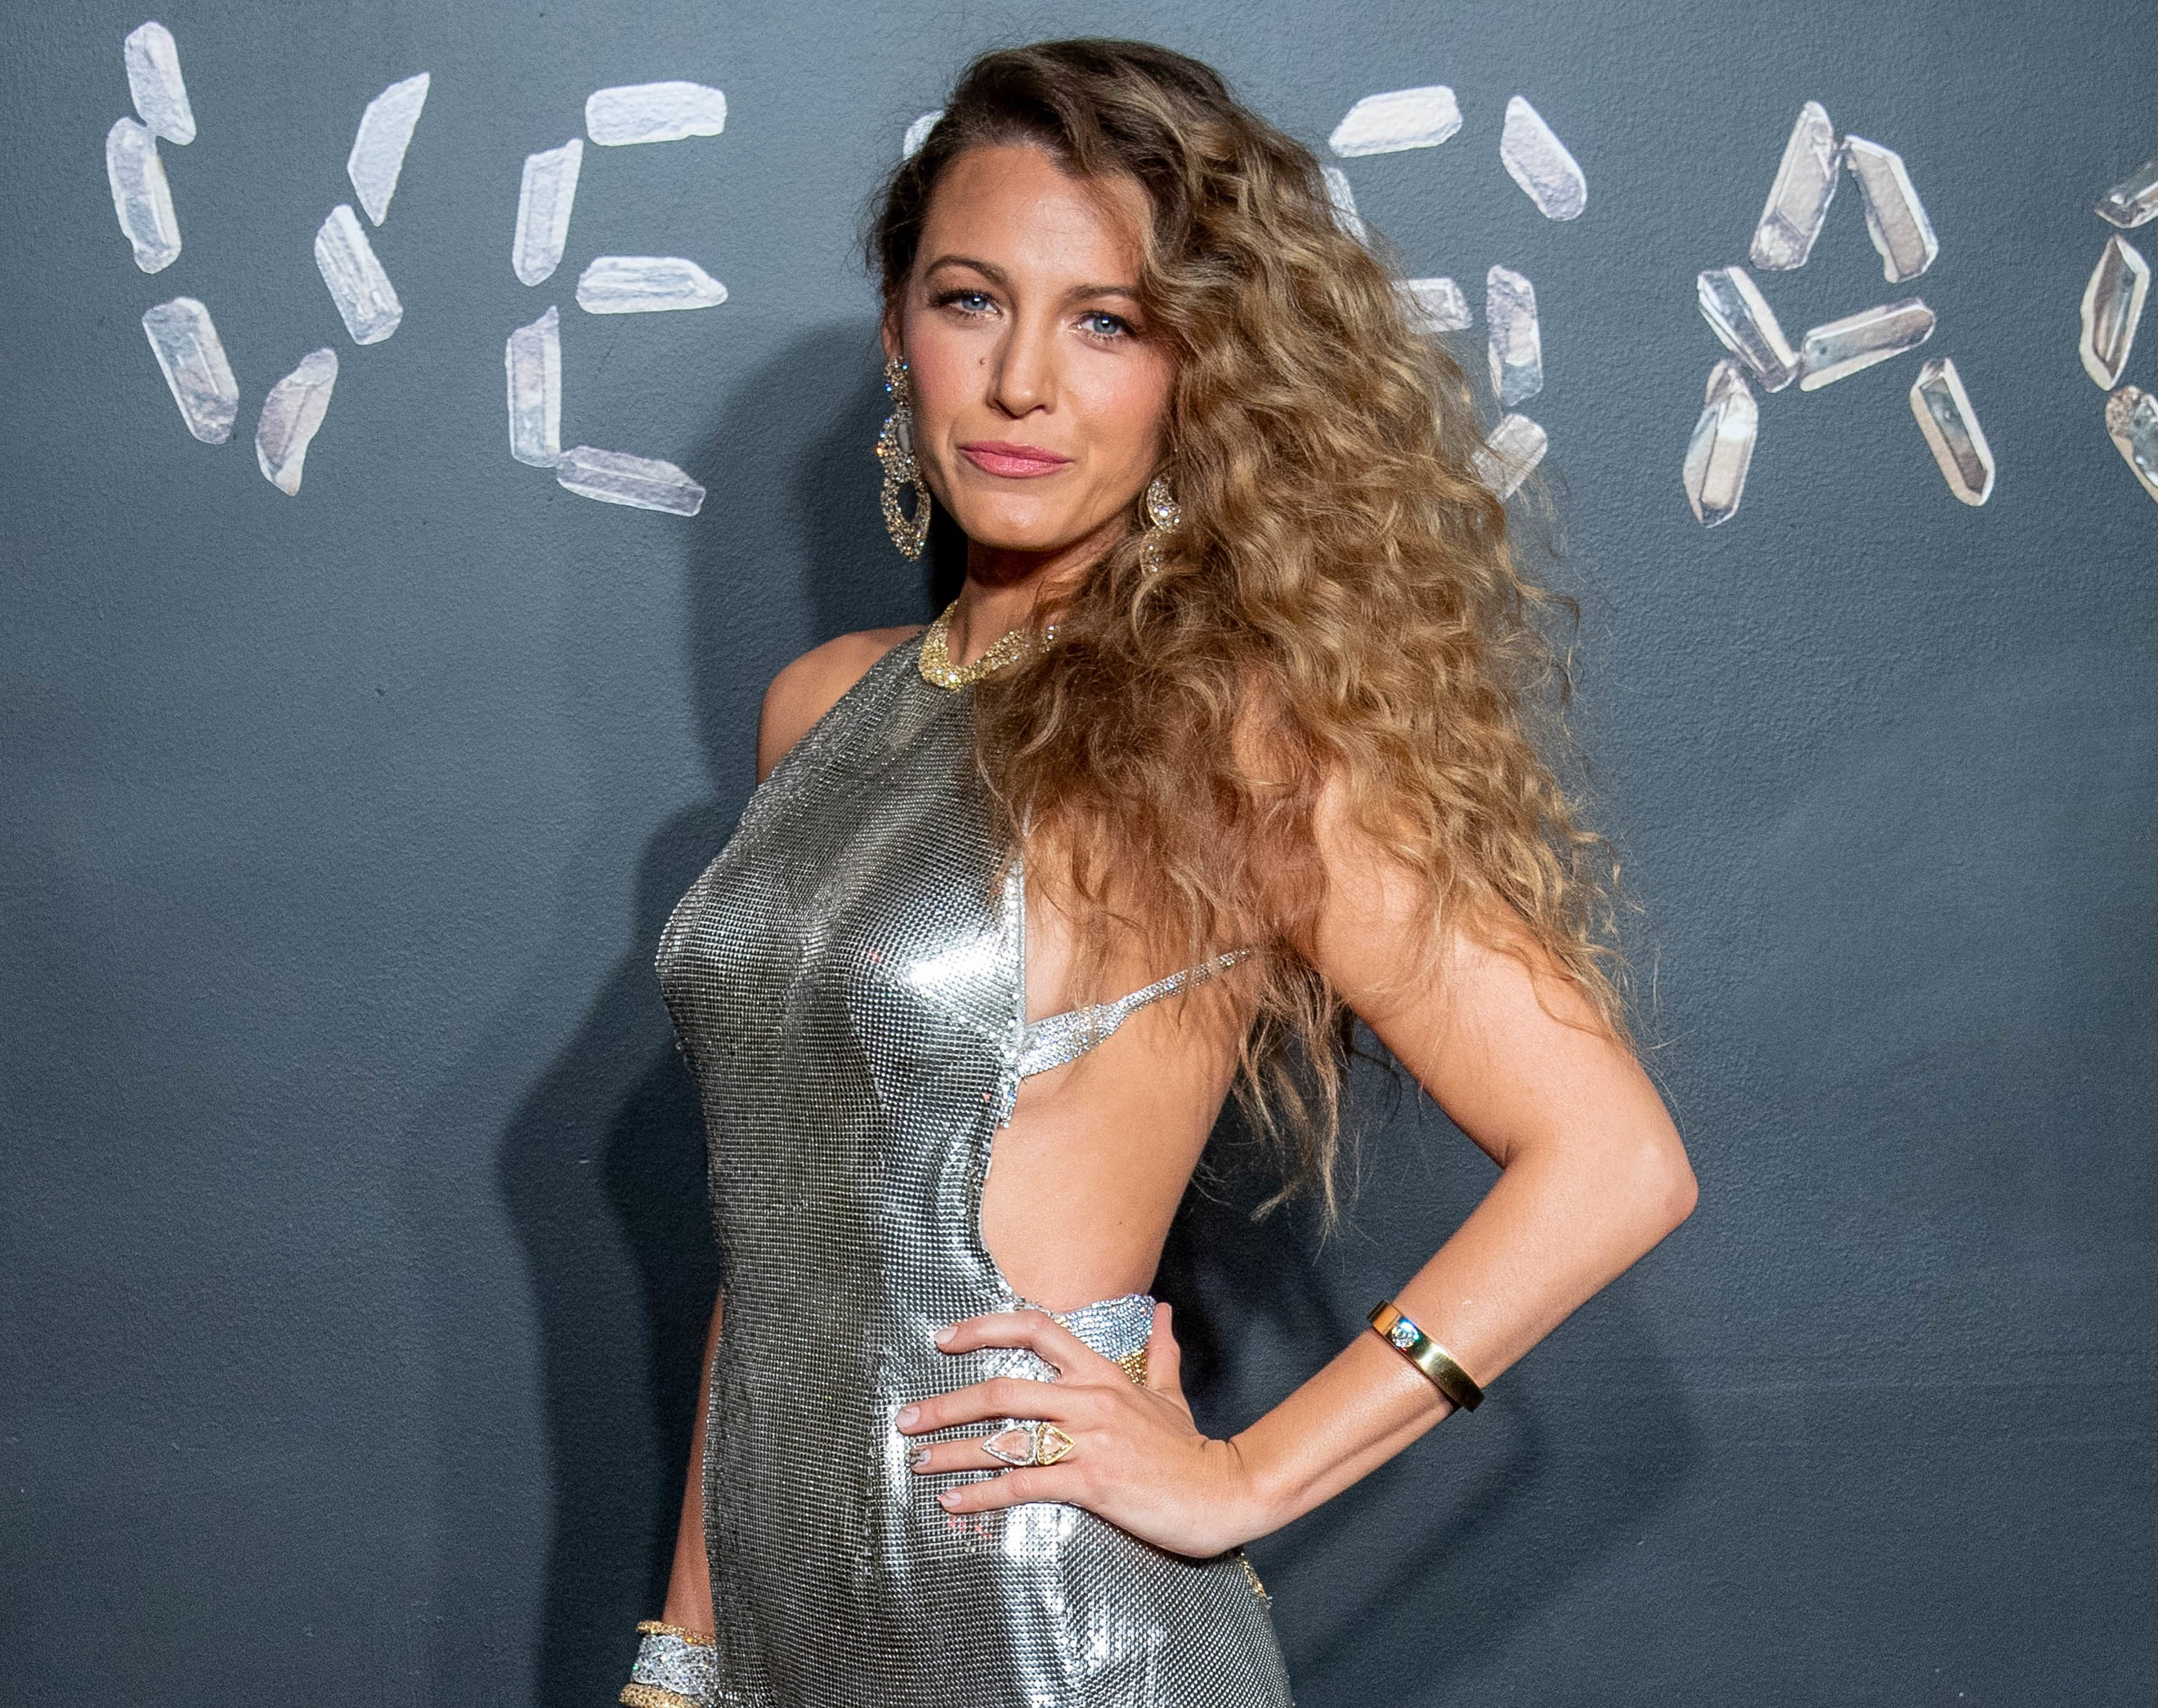 Blake wears a shimmering silver halter dress at an event